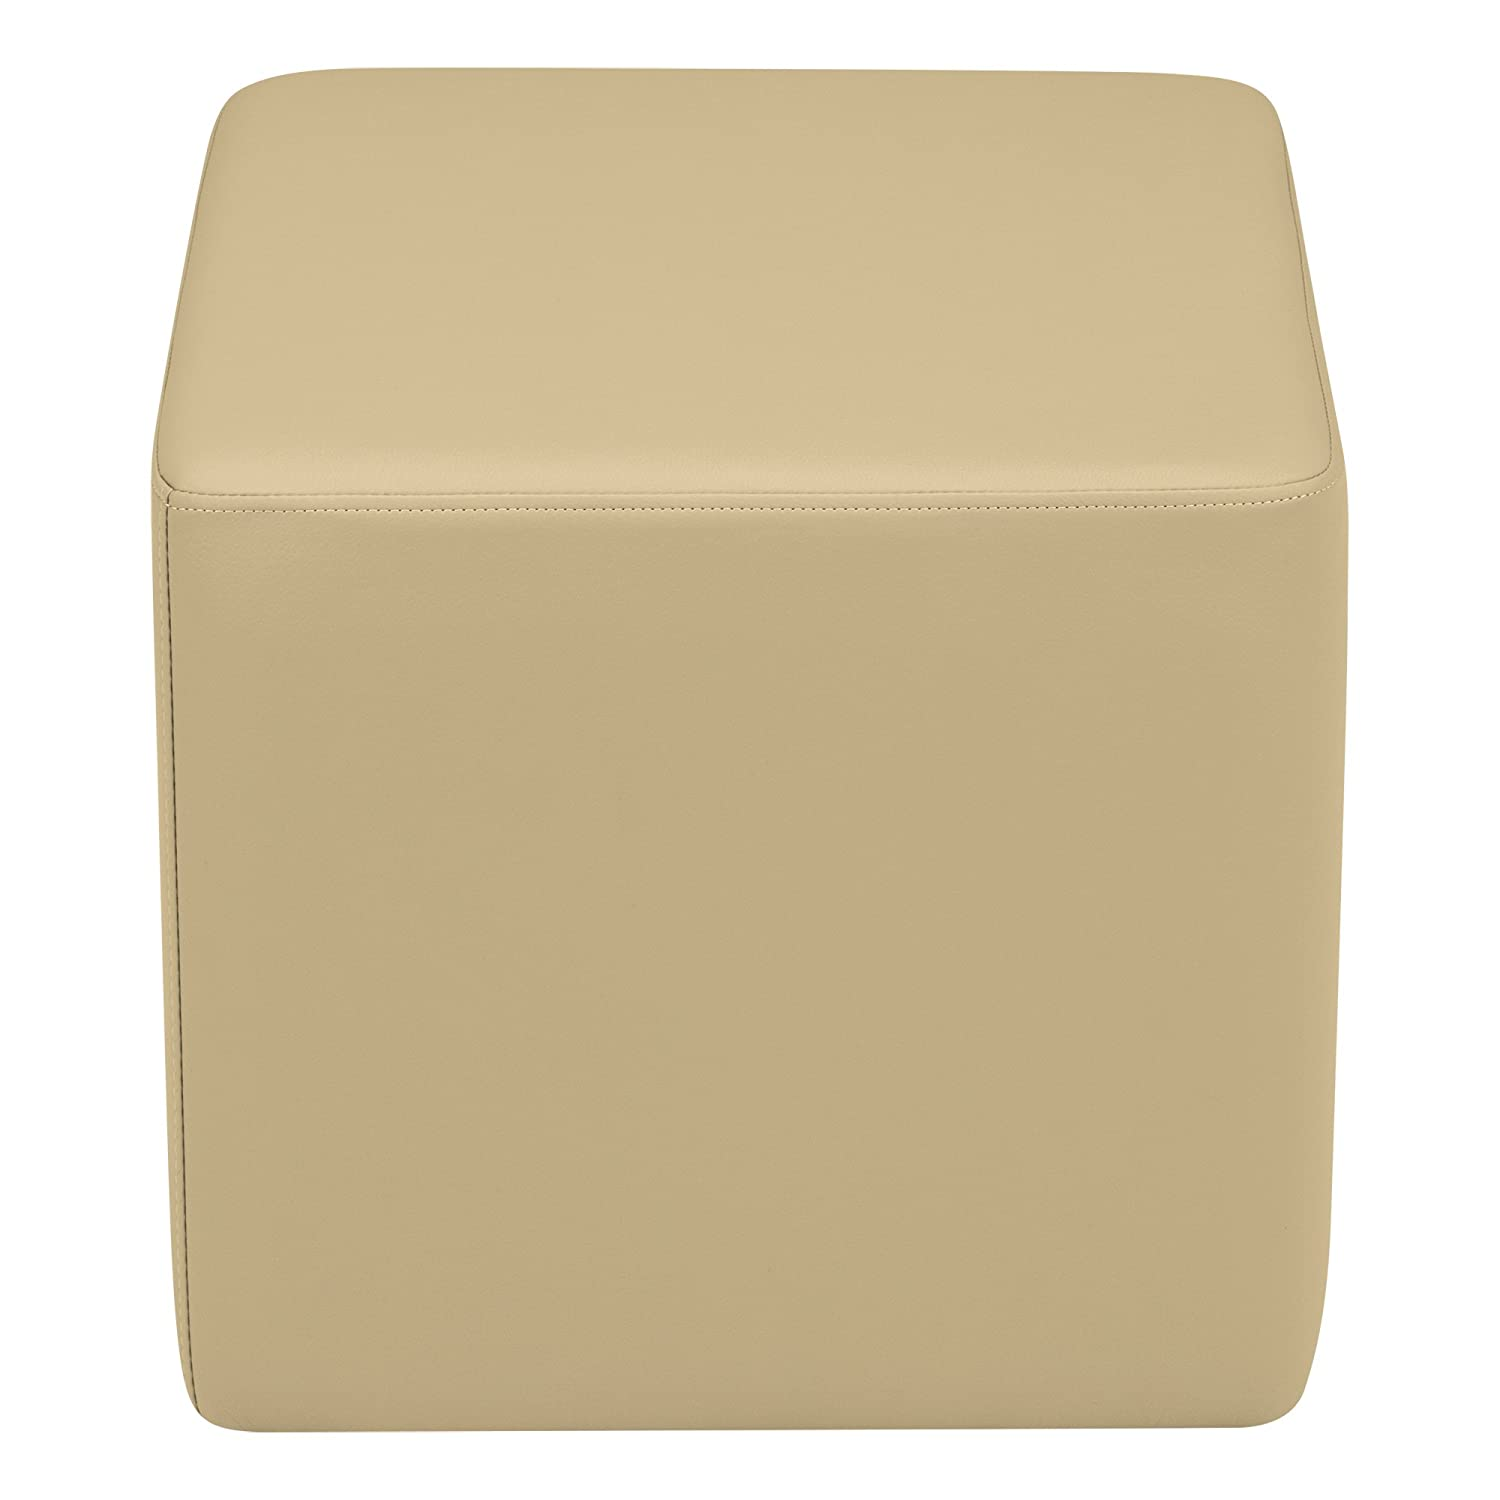 SPG-1001FG-A Sprogs Vinyl Soft Seating Square Stool 18 H Fern Green